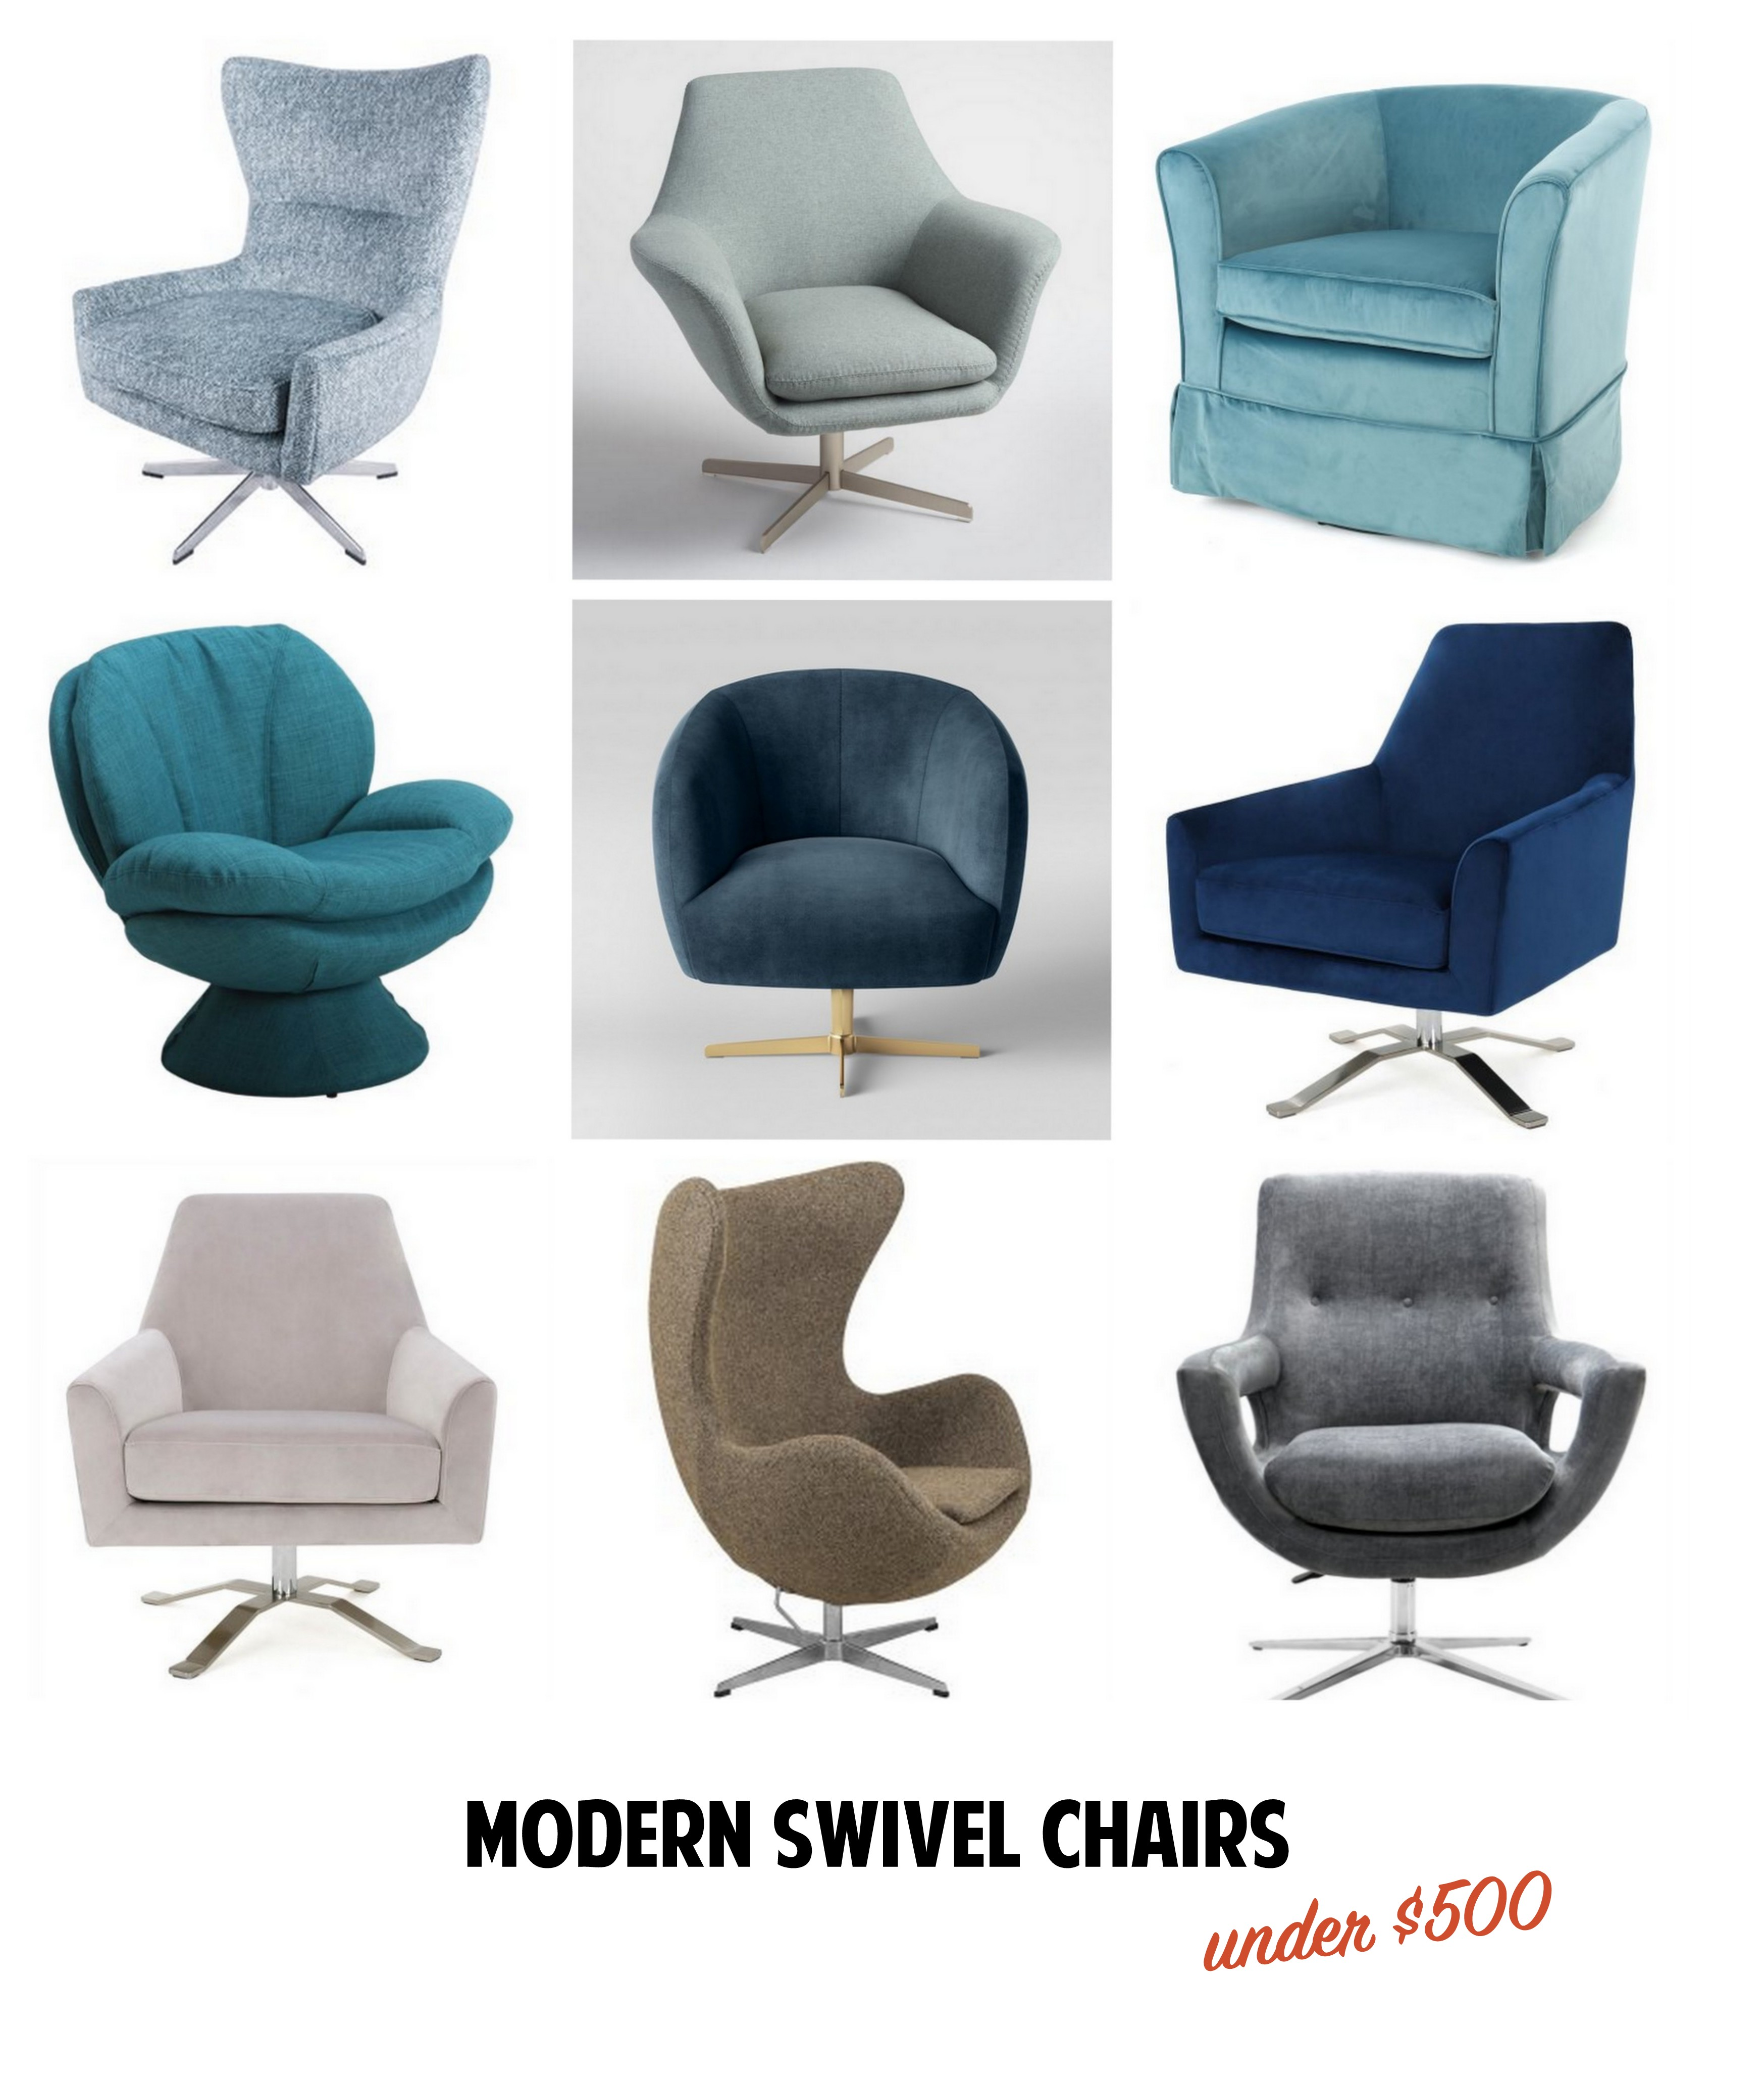 Modern Swivel Chairs Small Fry